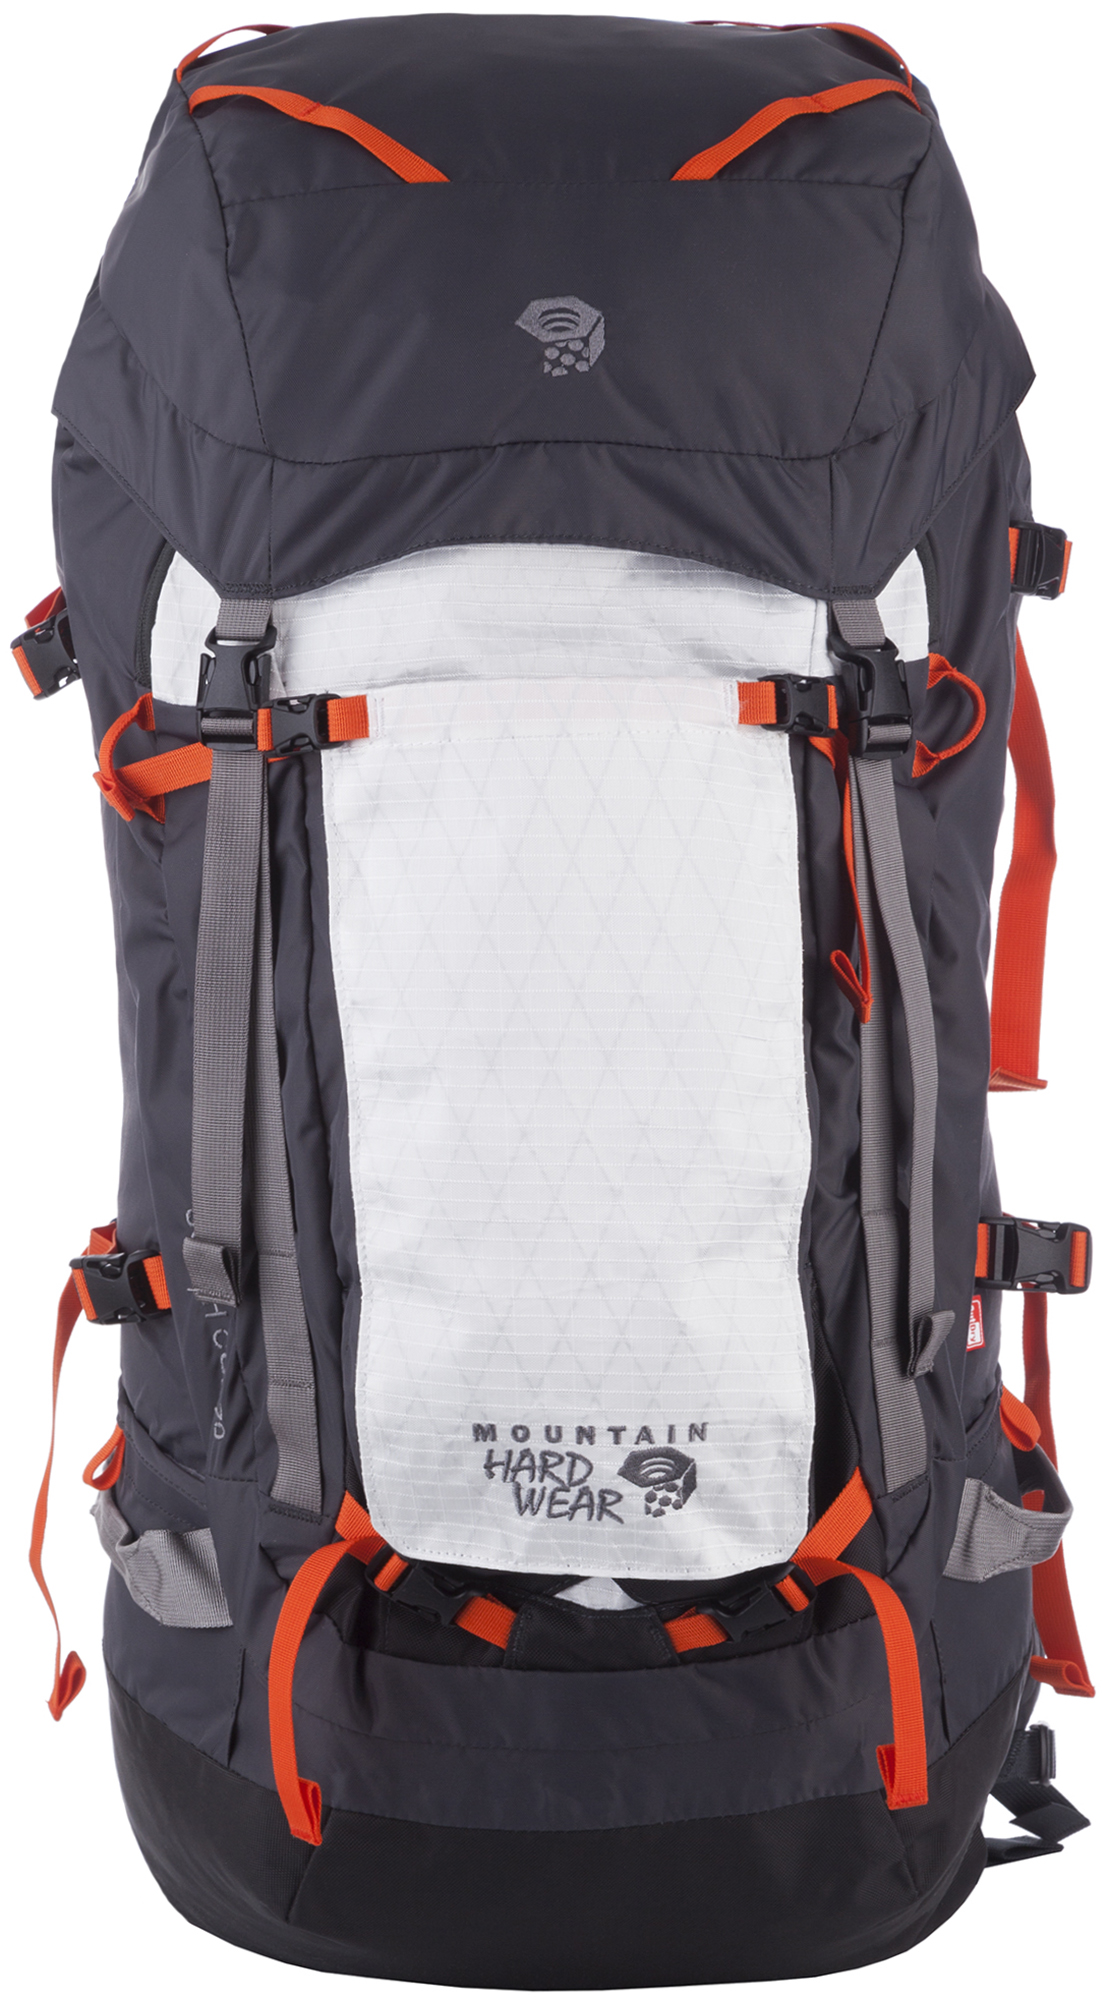 Mountain Hardwear Mountain Hardwear South Col 70 OutDry, размер Без размера